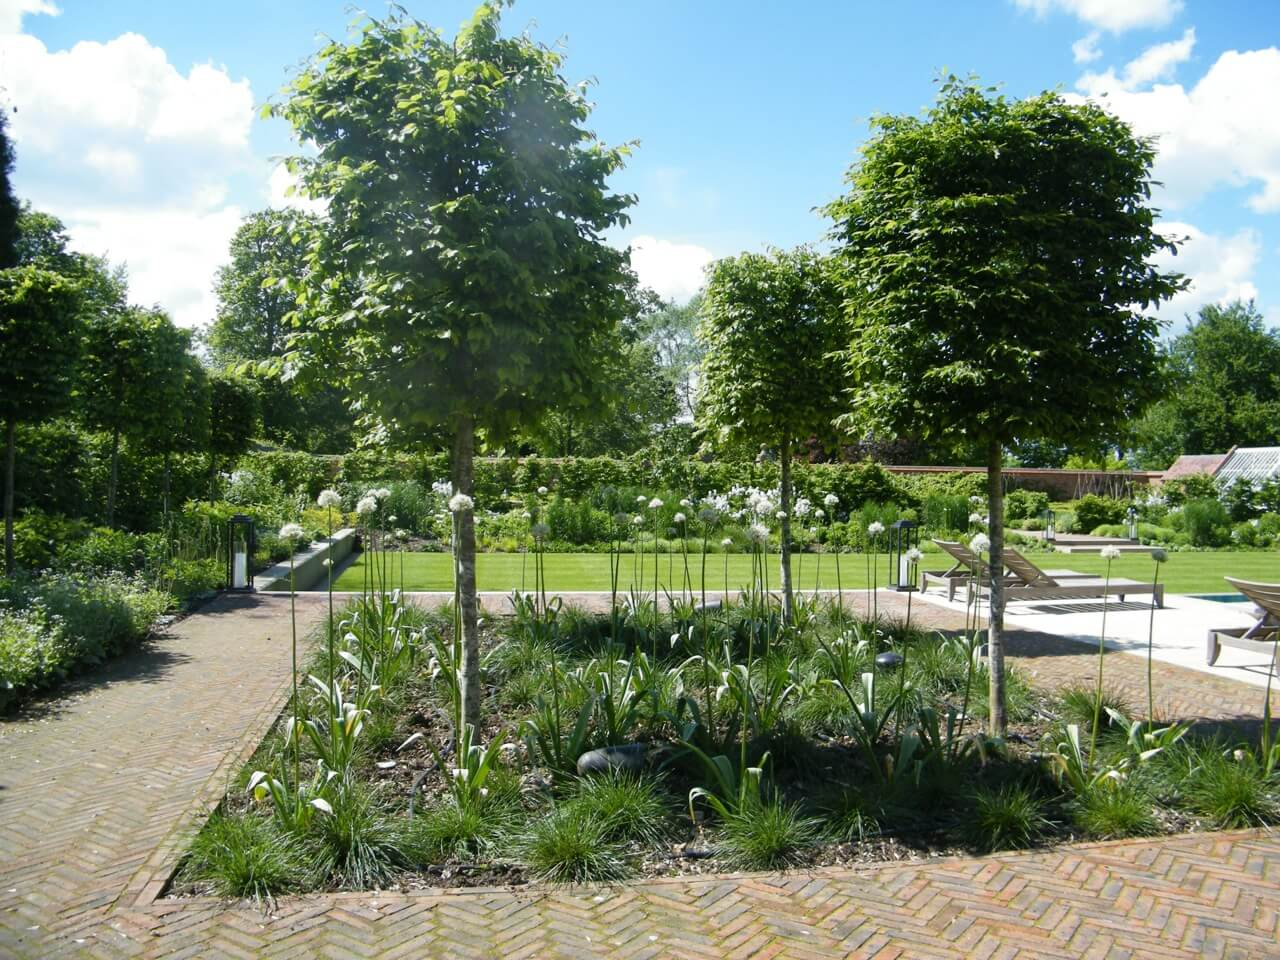 Oxford Garden Design. Oxford Walled Garden J And S Scapes 22  Design Build across Bucks Herts Beds